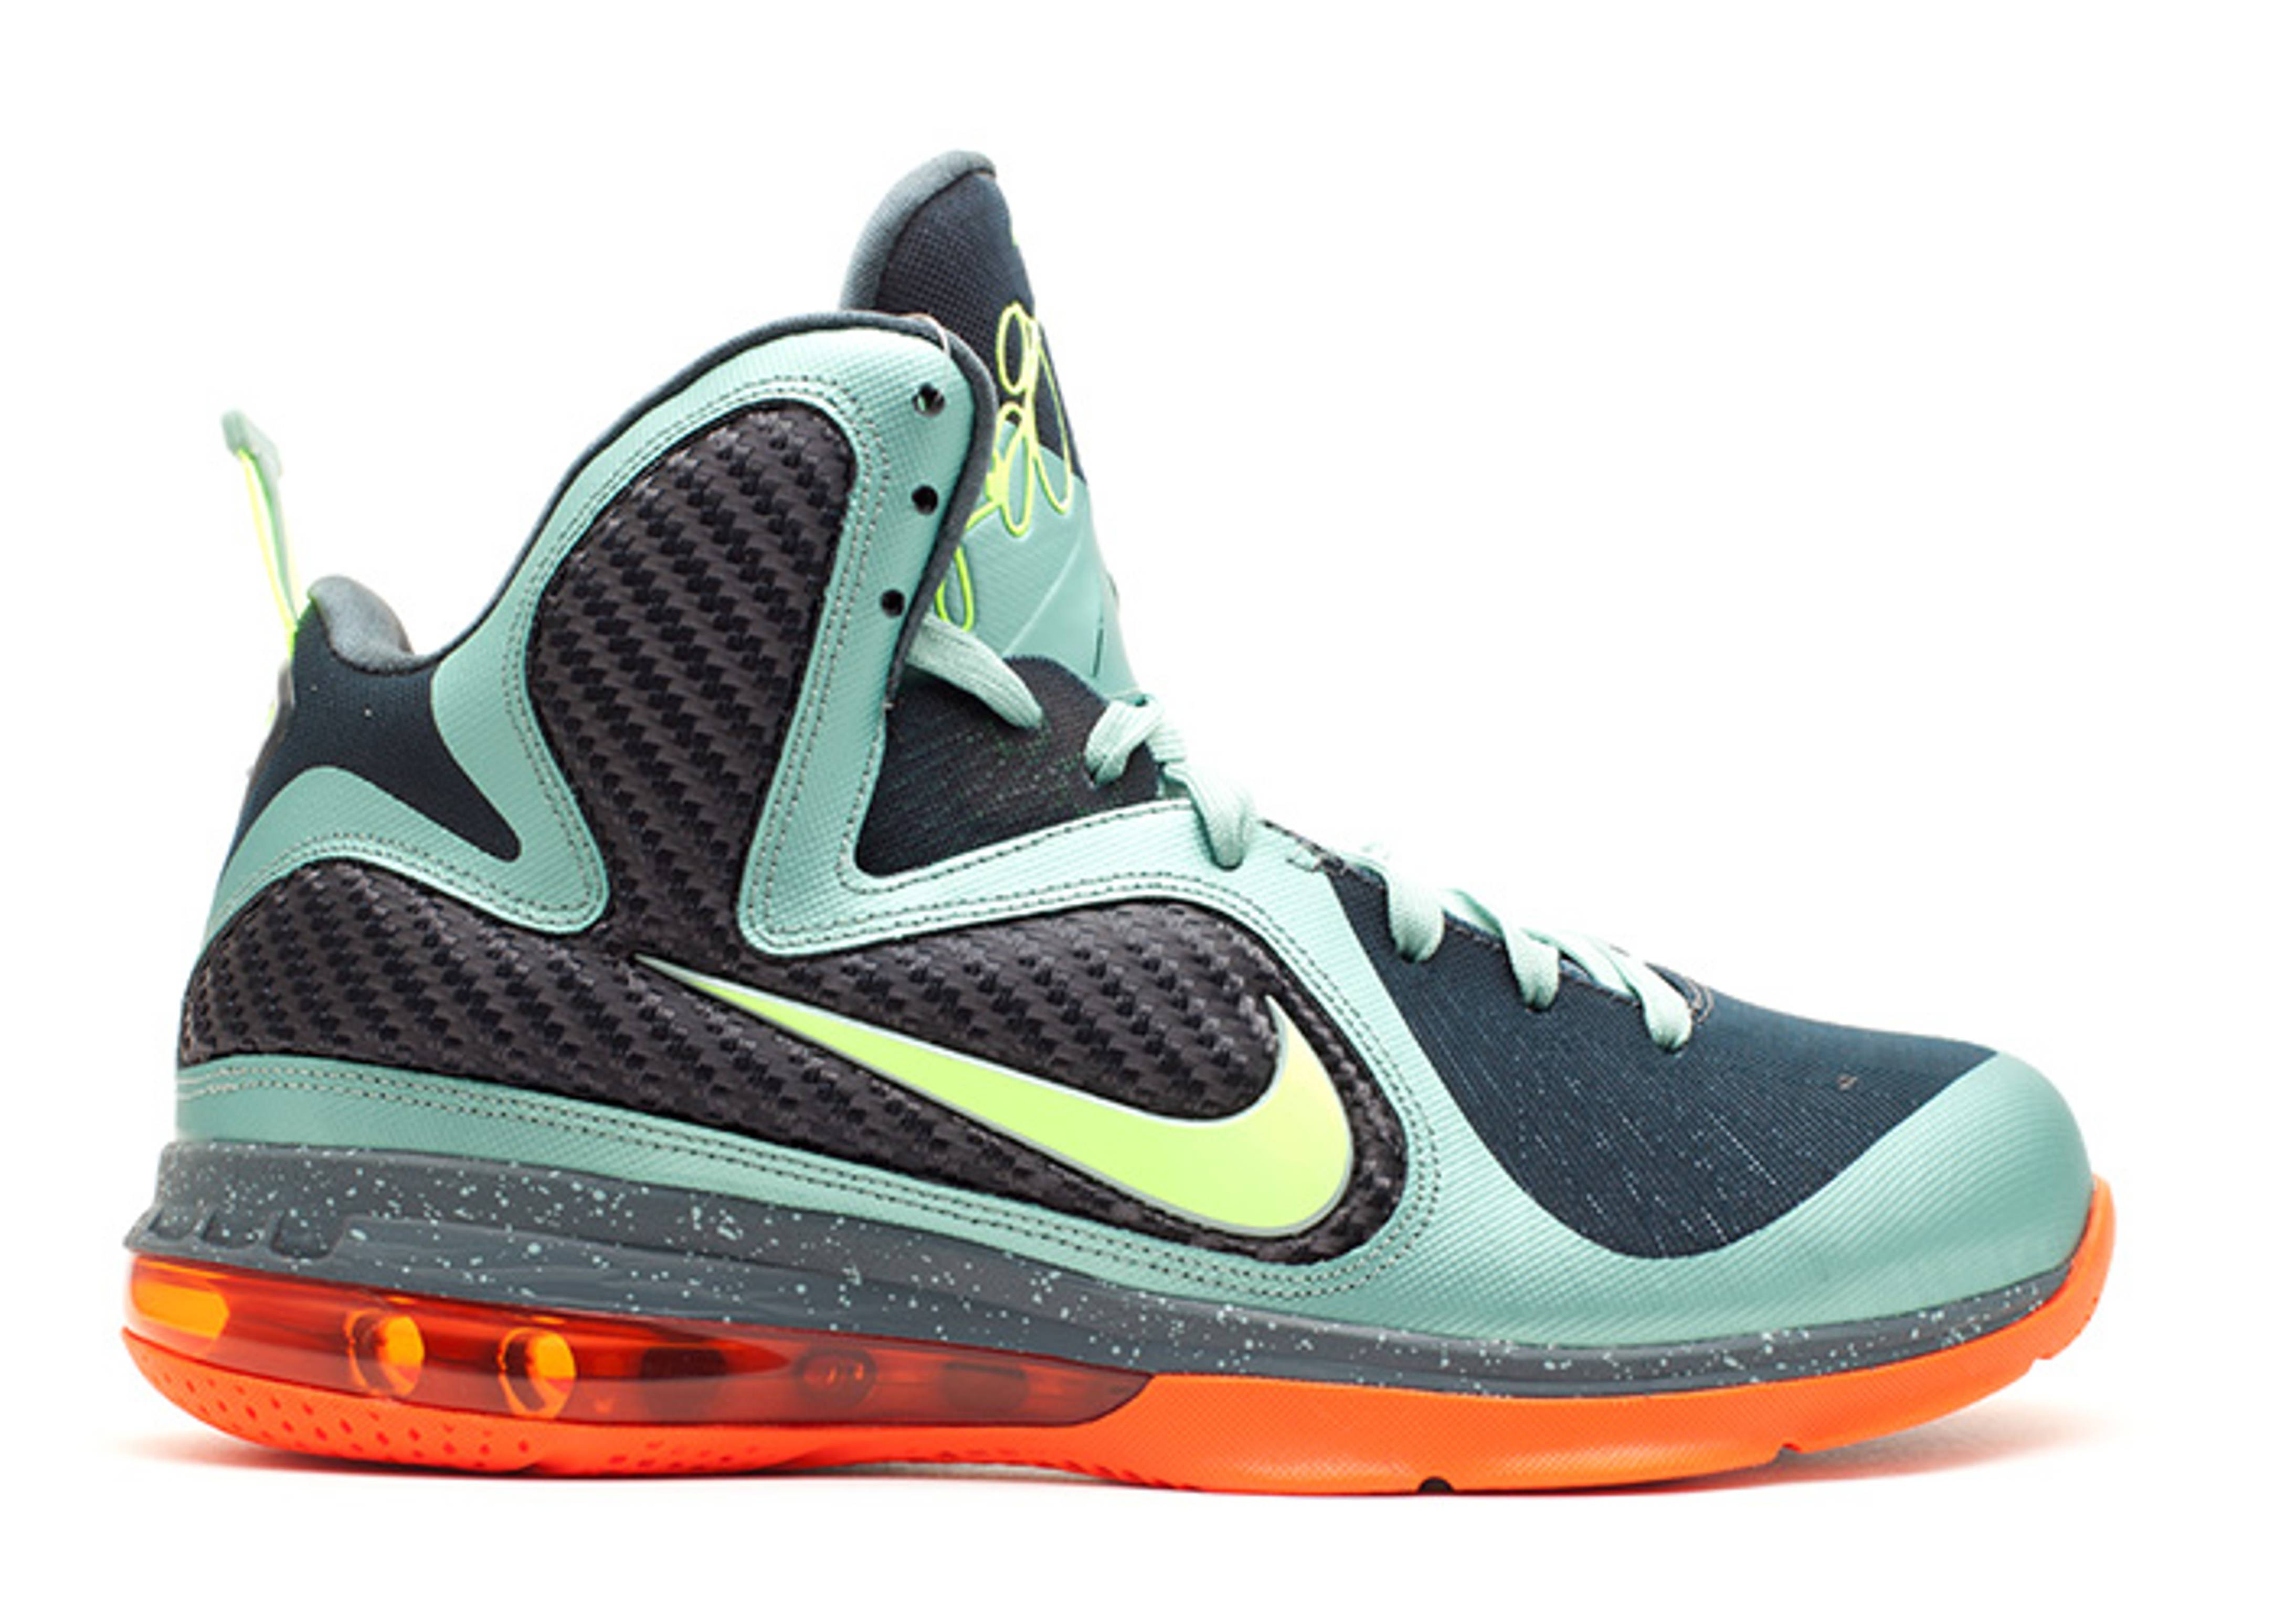 Men's Nike LeBron 9 IX Cannon Volt Slate Blue Orange Sneakers : N33r2270